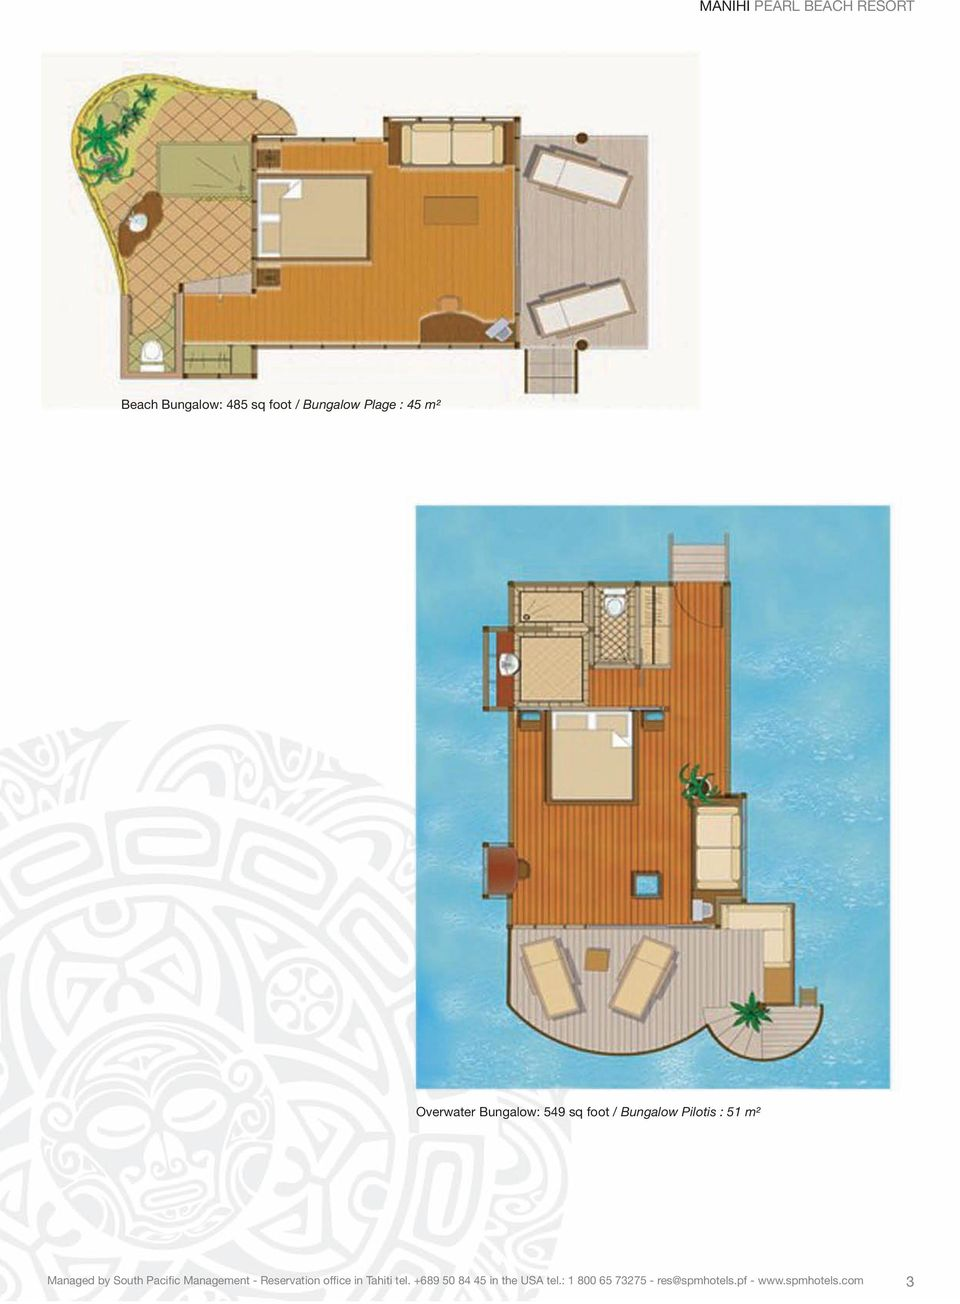 Overwater Bungalow: 549 sq